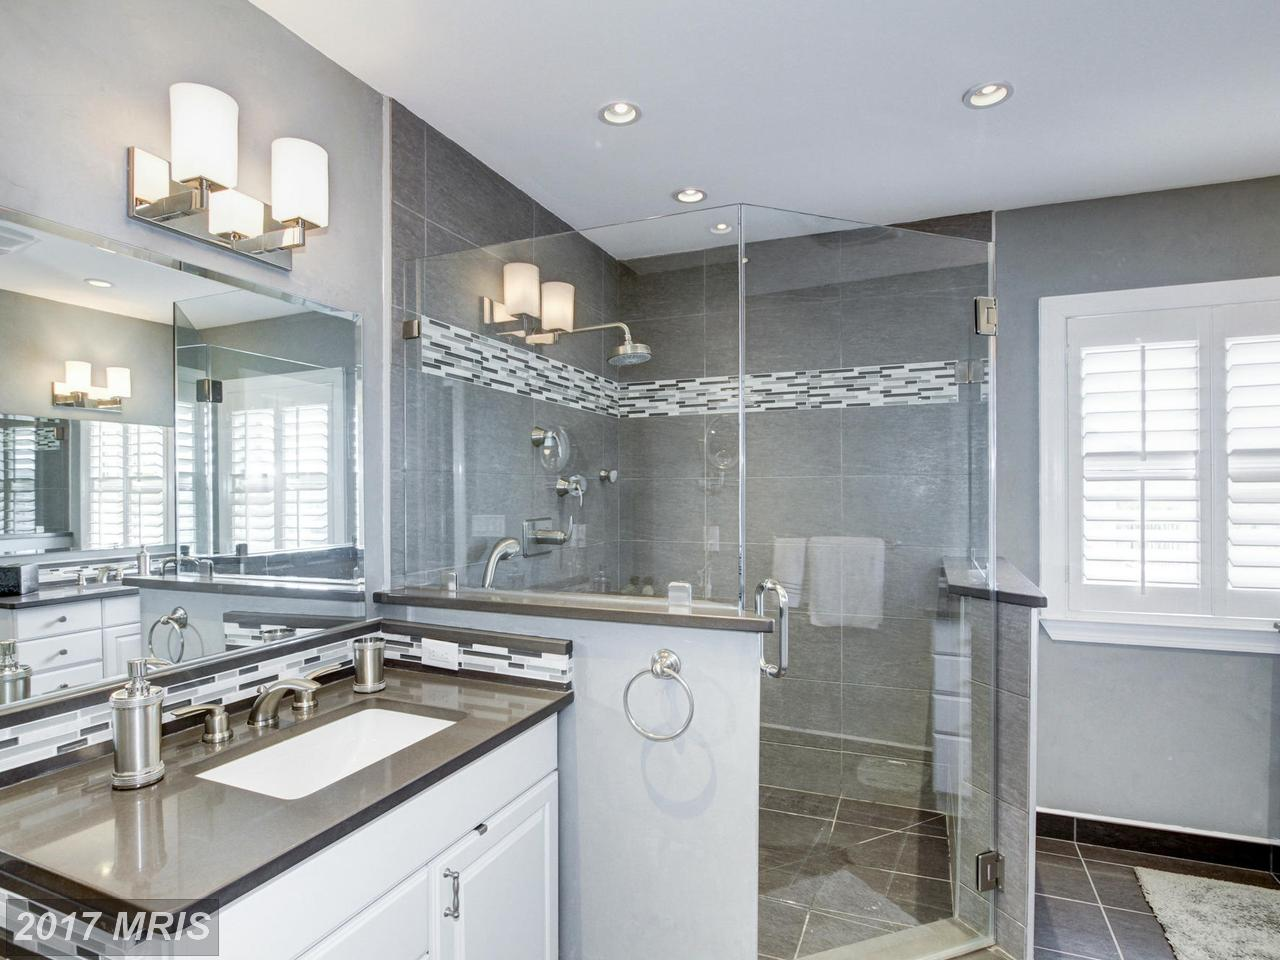 Additional photo for property listing at Detached, International - WASHINGTON, DC 4662 CHARLESTON TER NW Washington, District Of Columbia,20007 United States